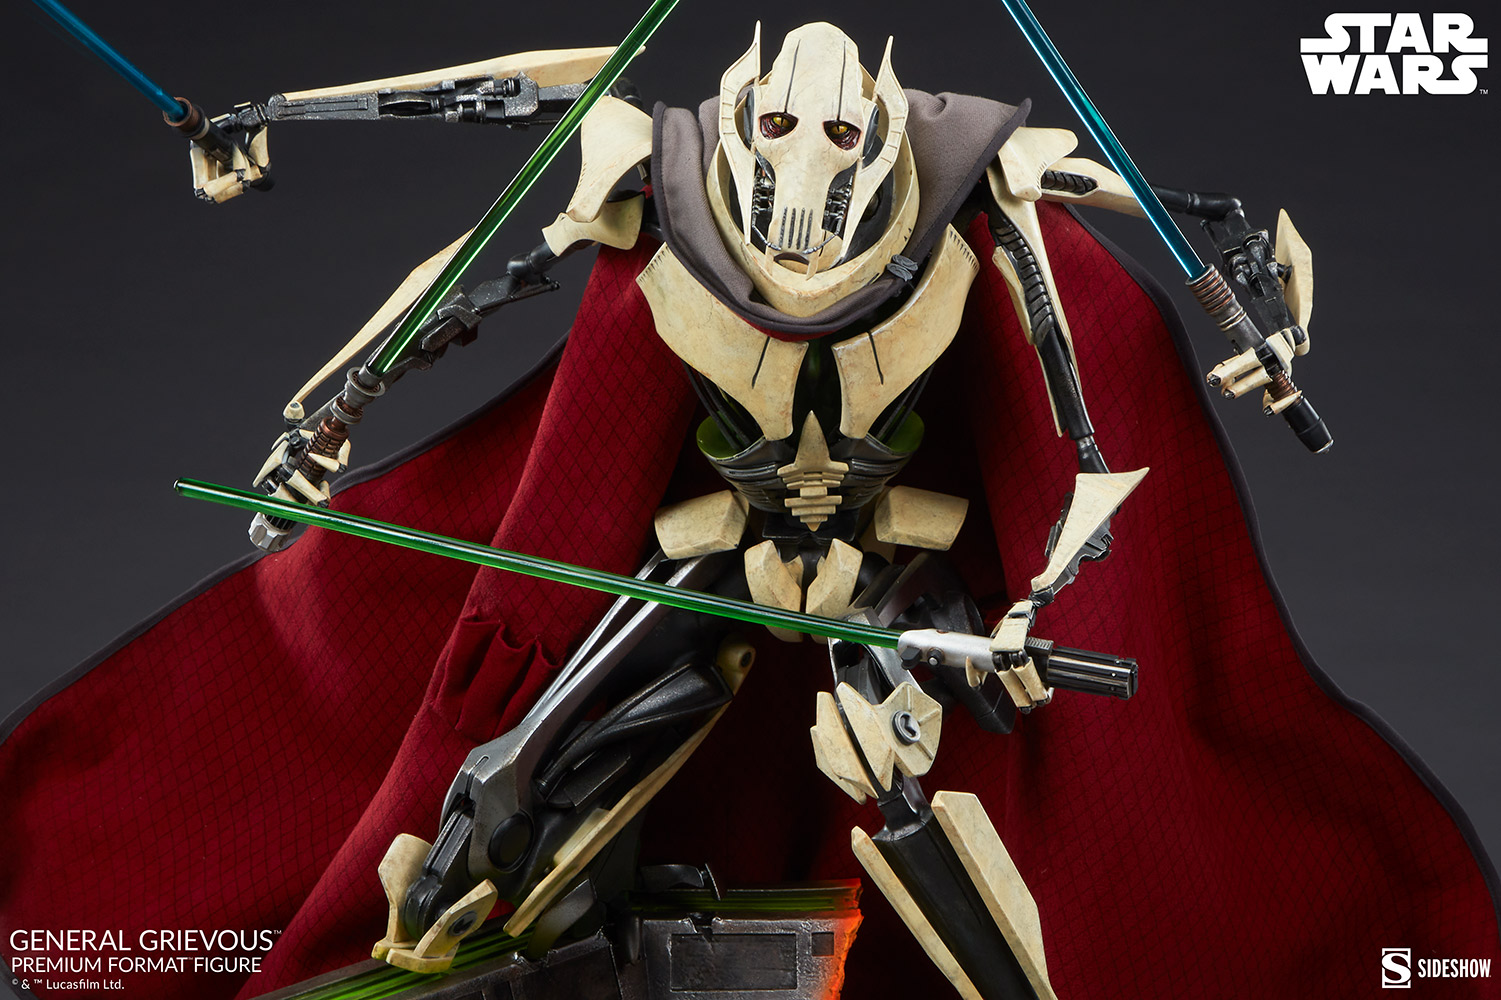 Star Wars: Revenge of the Sith : General Grievous Premium Format Figure General-grievous_star-wars_gallery_6155e68414d67